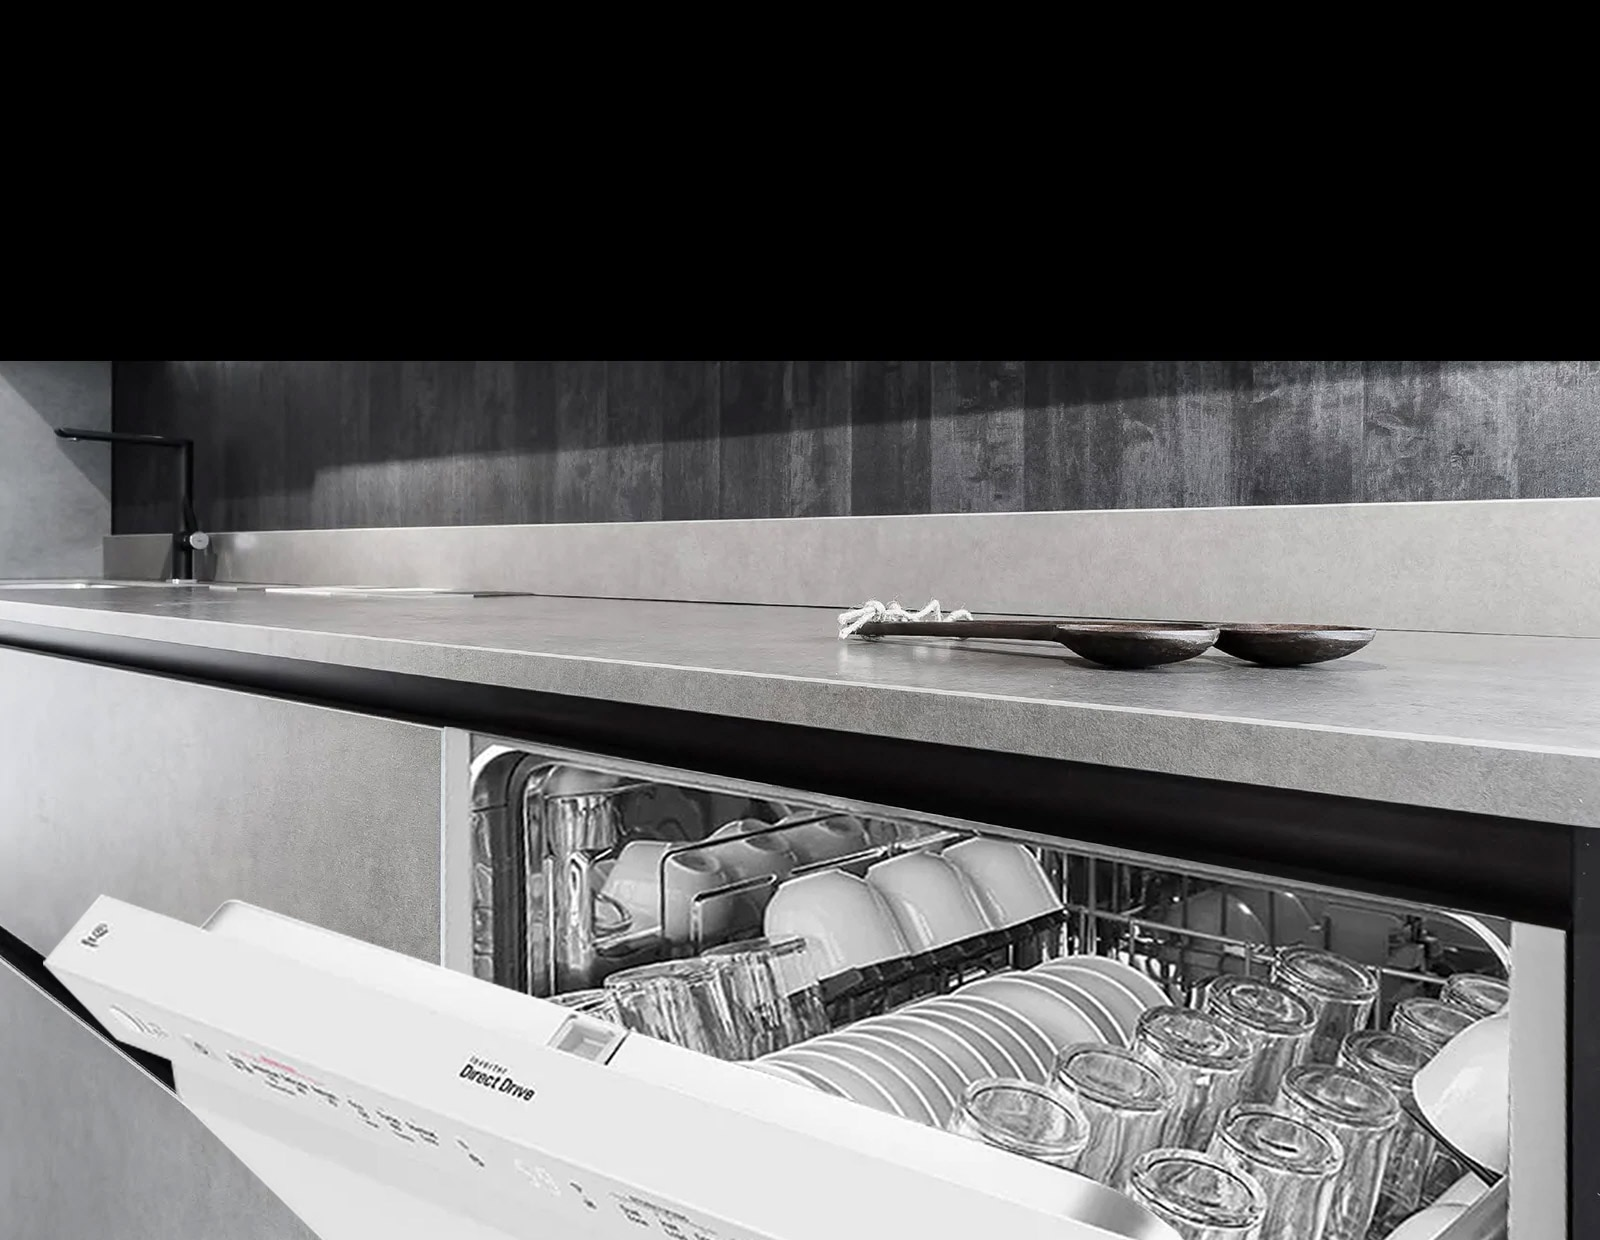 LG Greater Convenience & Performance Dishwasher